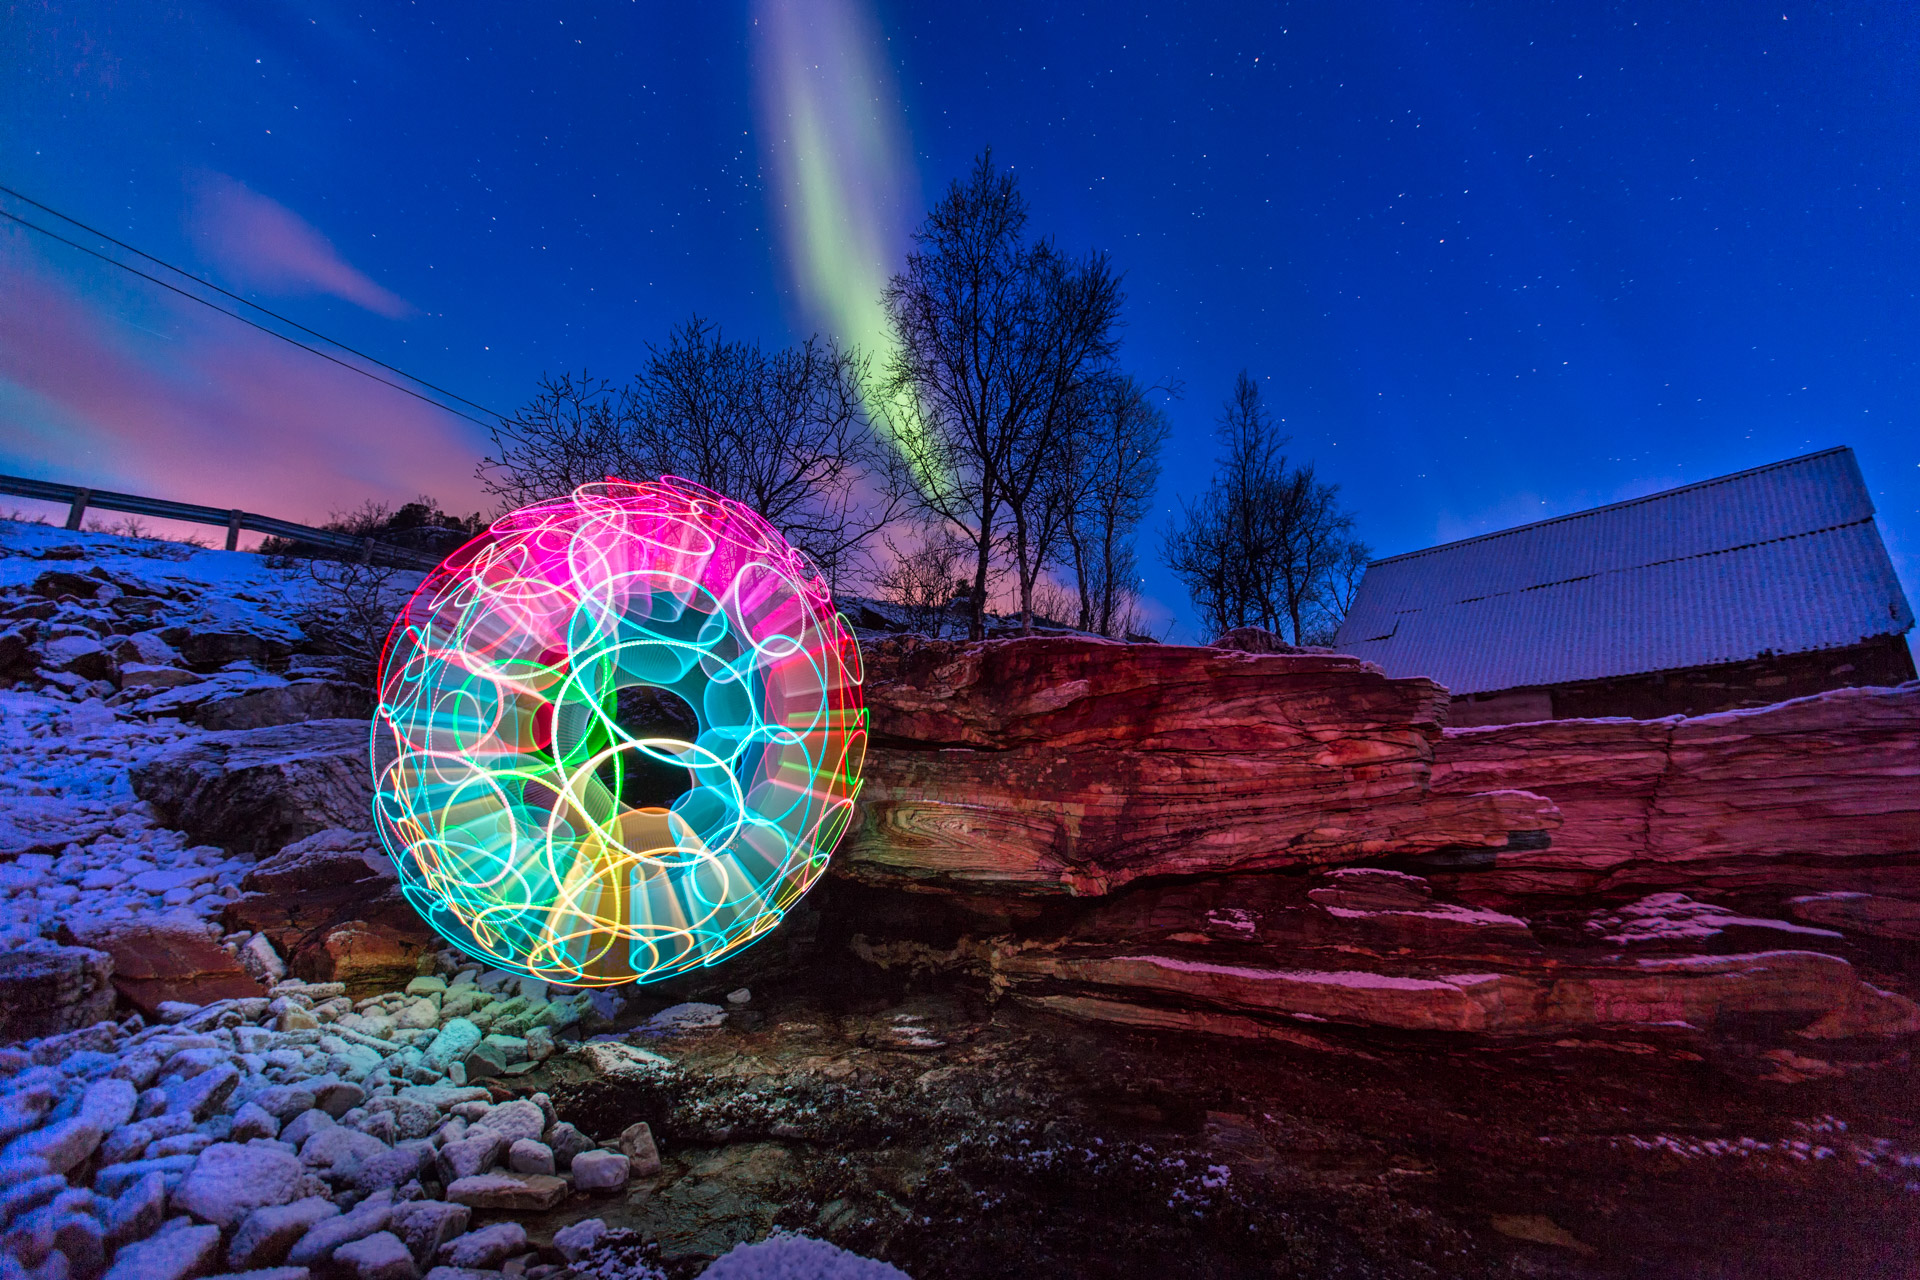 Swirly Aurora : Lightpainting combined with aurora lights in Norway